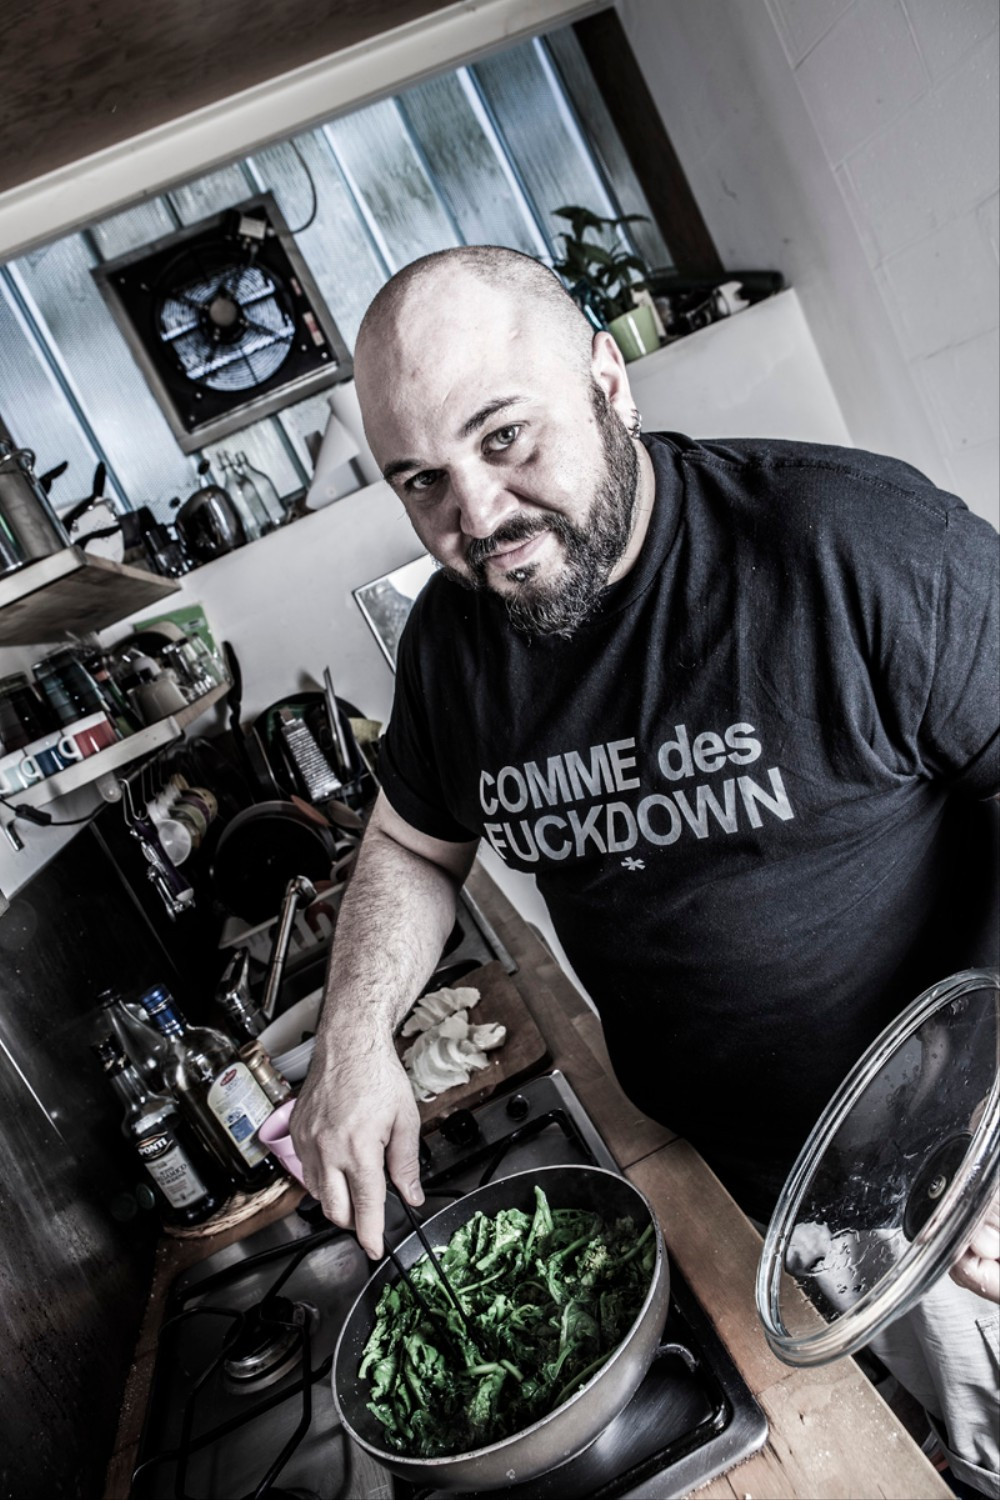 There is now a cookbook for bears munchies are any of the bears in your cookbook professional chefs we have a wide variety of cooks in the book a multi millionaire the guy who sells street food forumfinder Choice Image